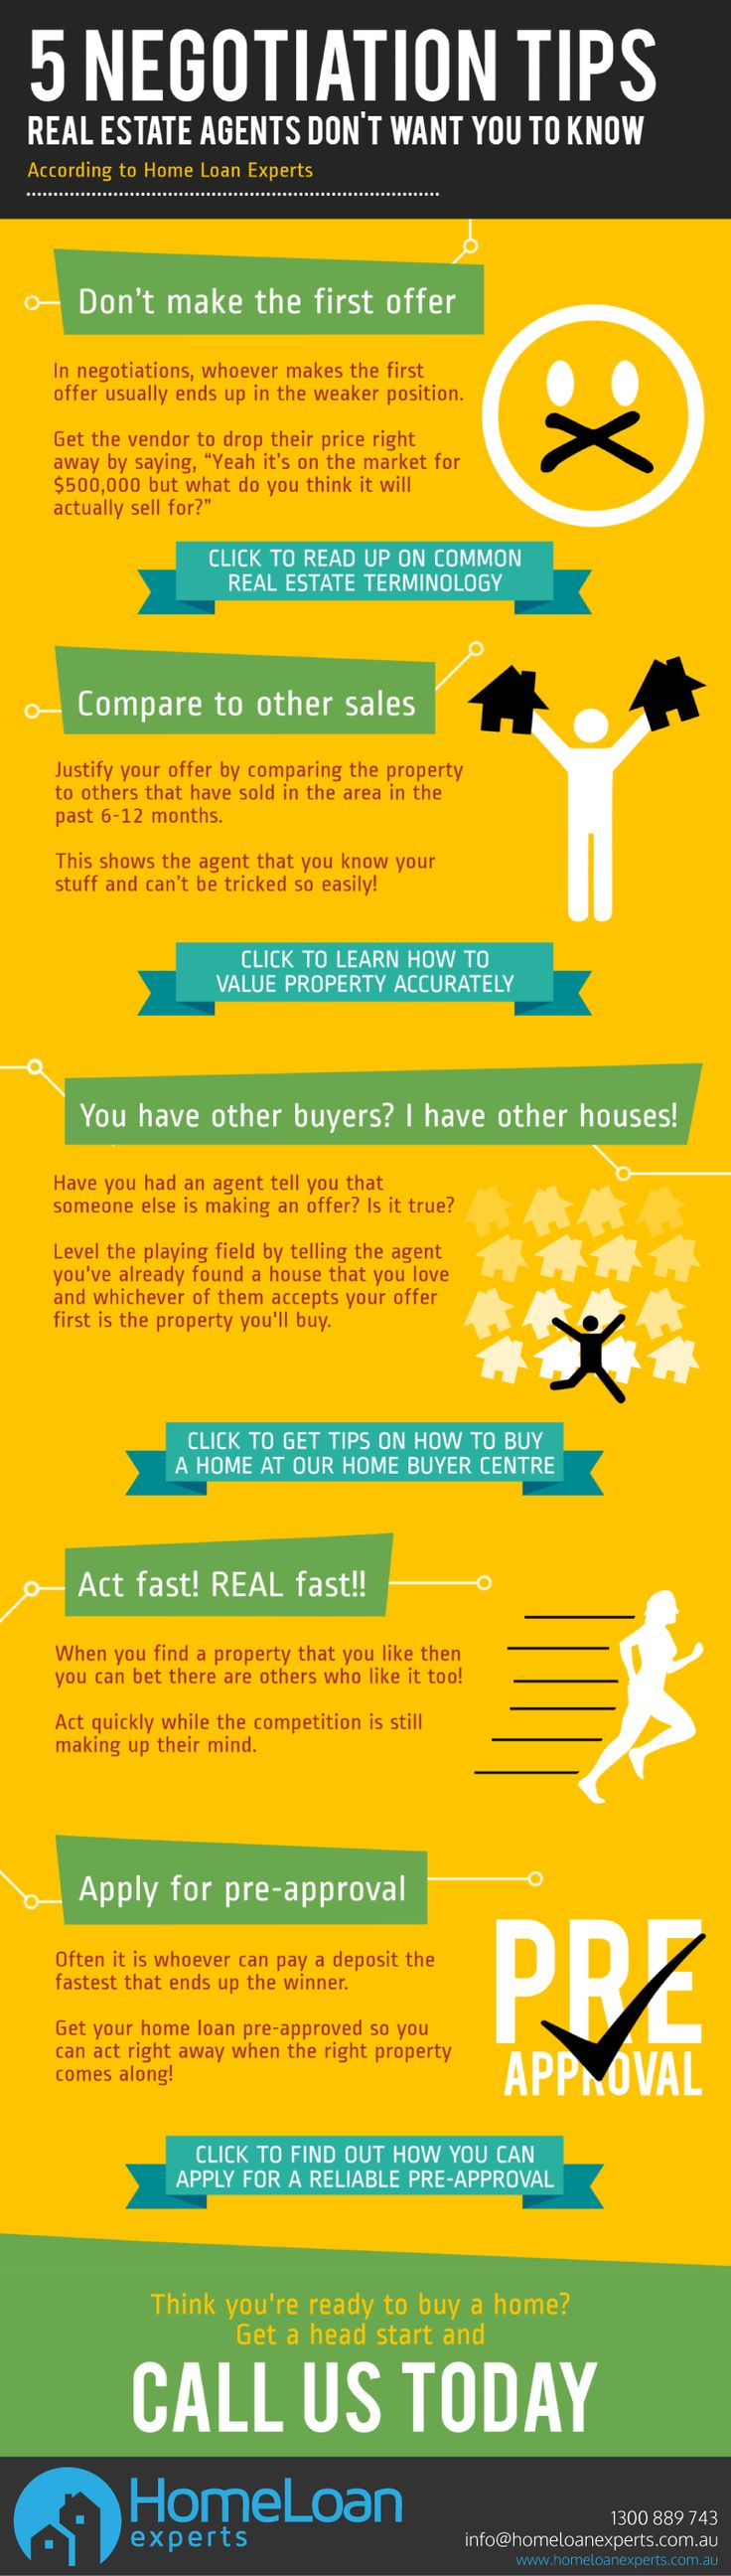 House talk - Insider's tips on getting the best deal from your real estate agent.